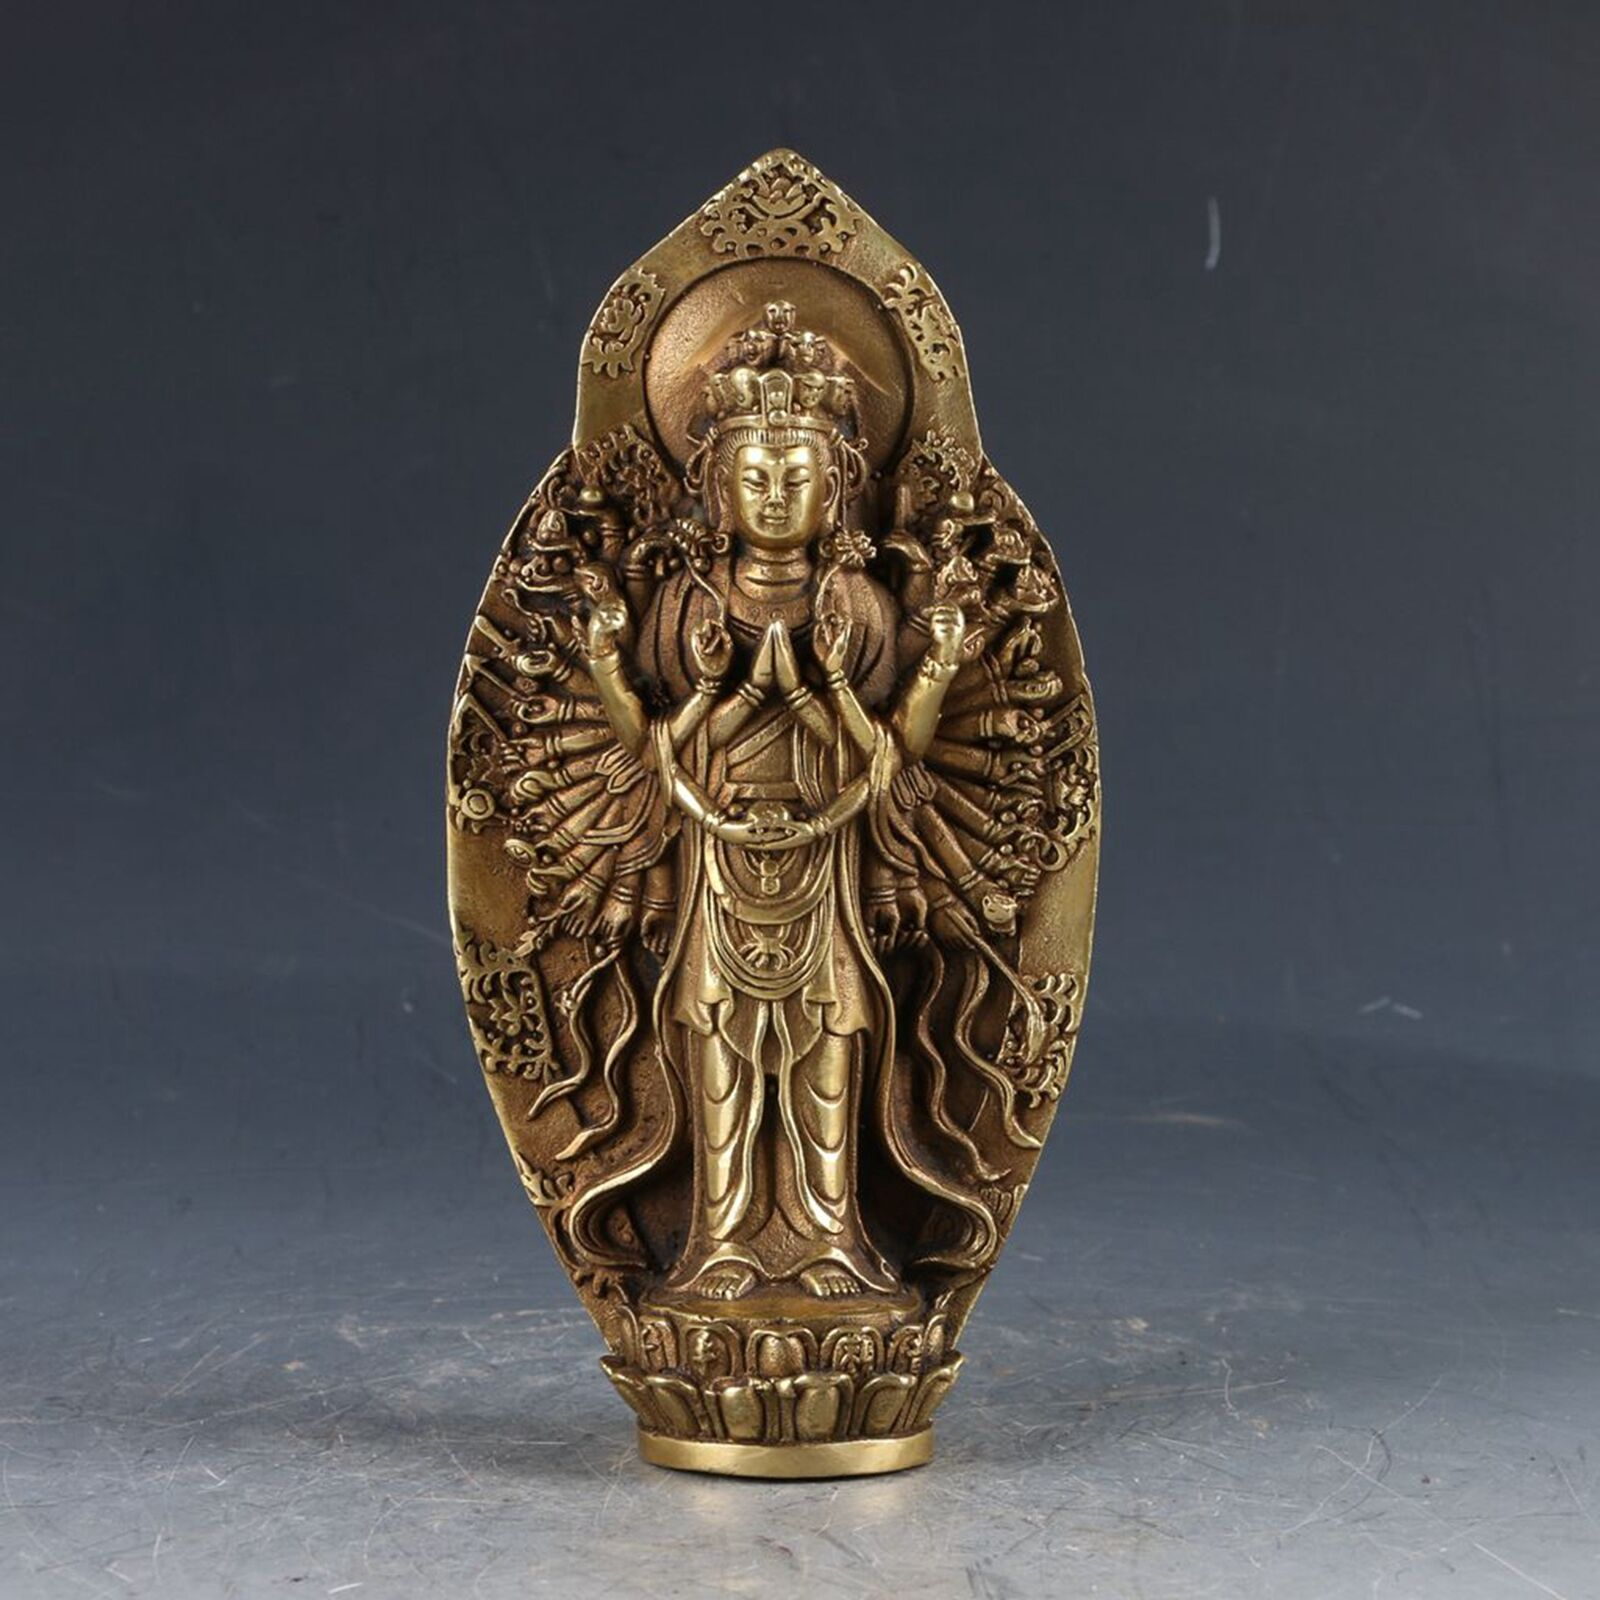 Collection Chinese Brass Carved Tibetan Guan Yin Thousand Hand Kwan yin Bodhisattva Buddha Statue Exquisite Small Statues|Statues & Sculptures| |  - title=